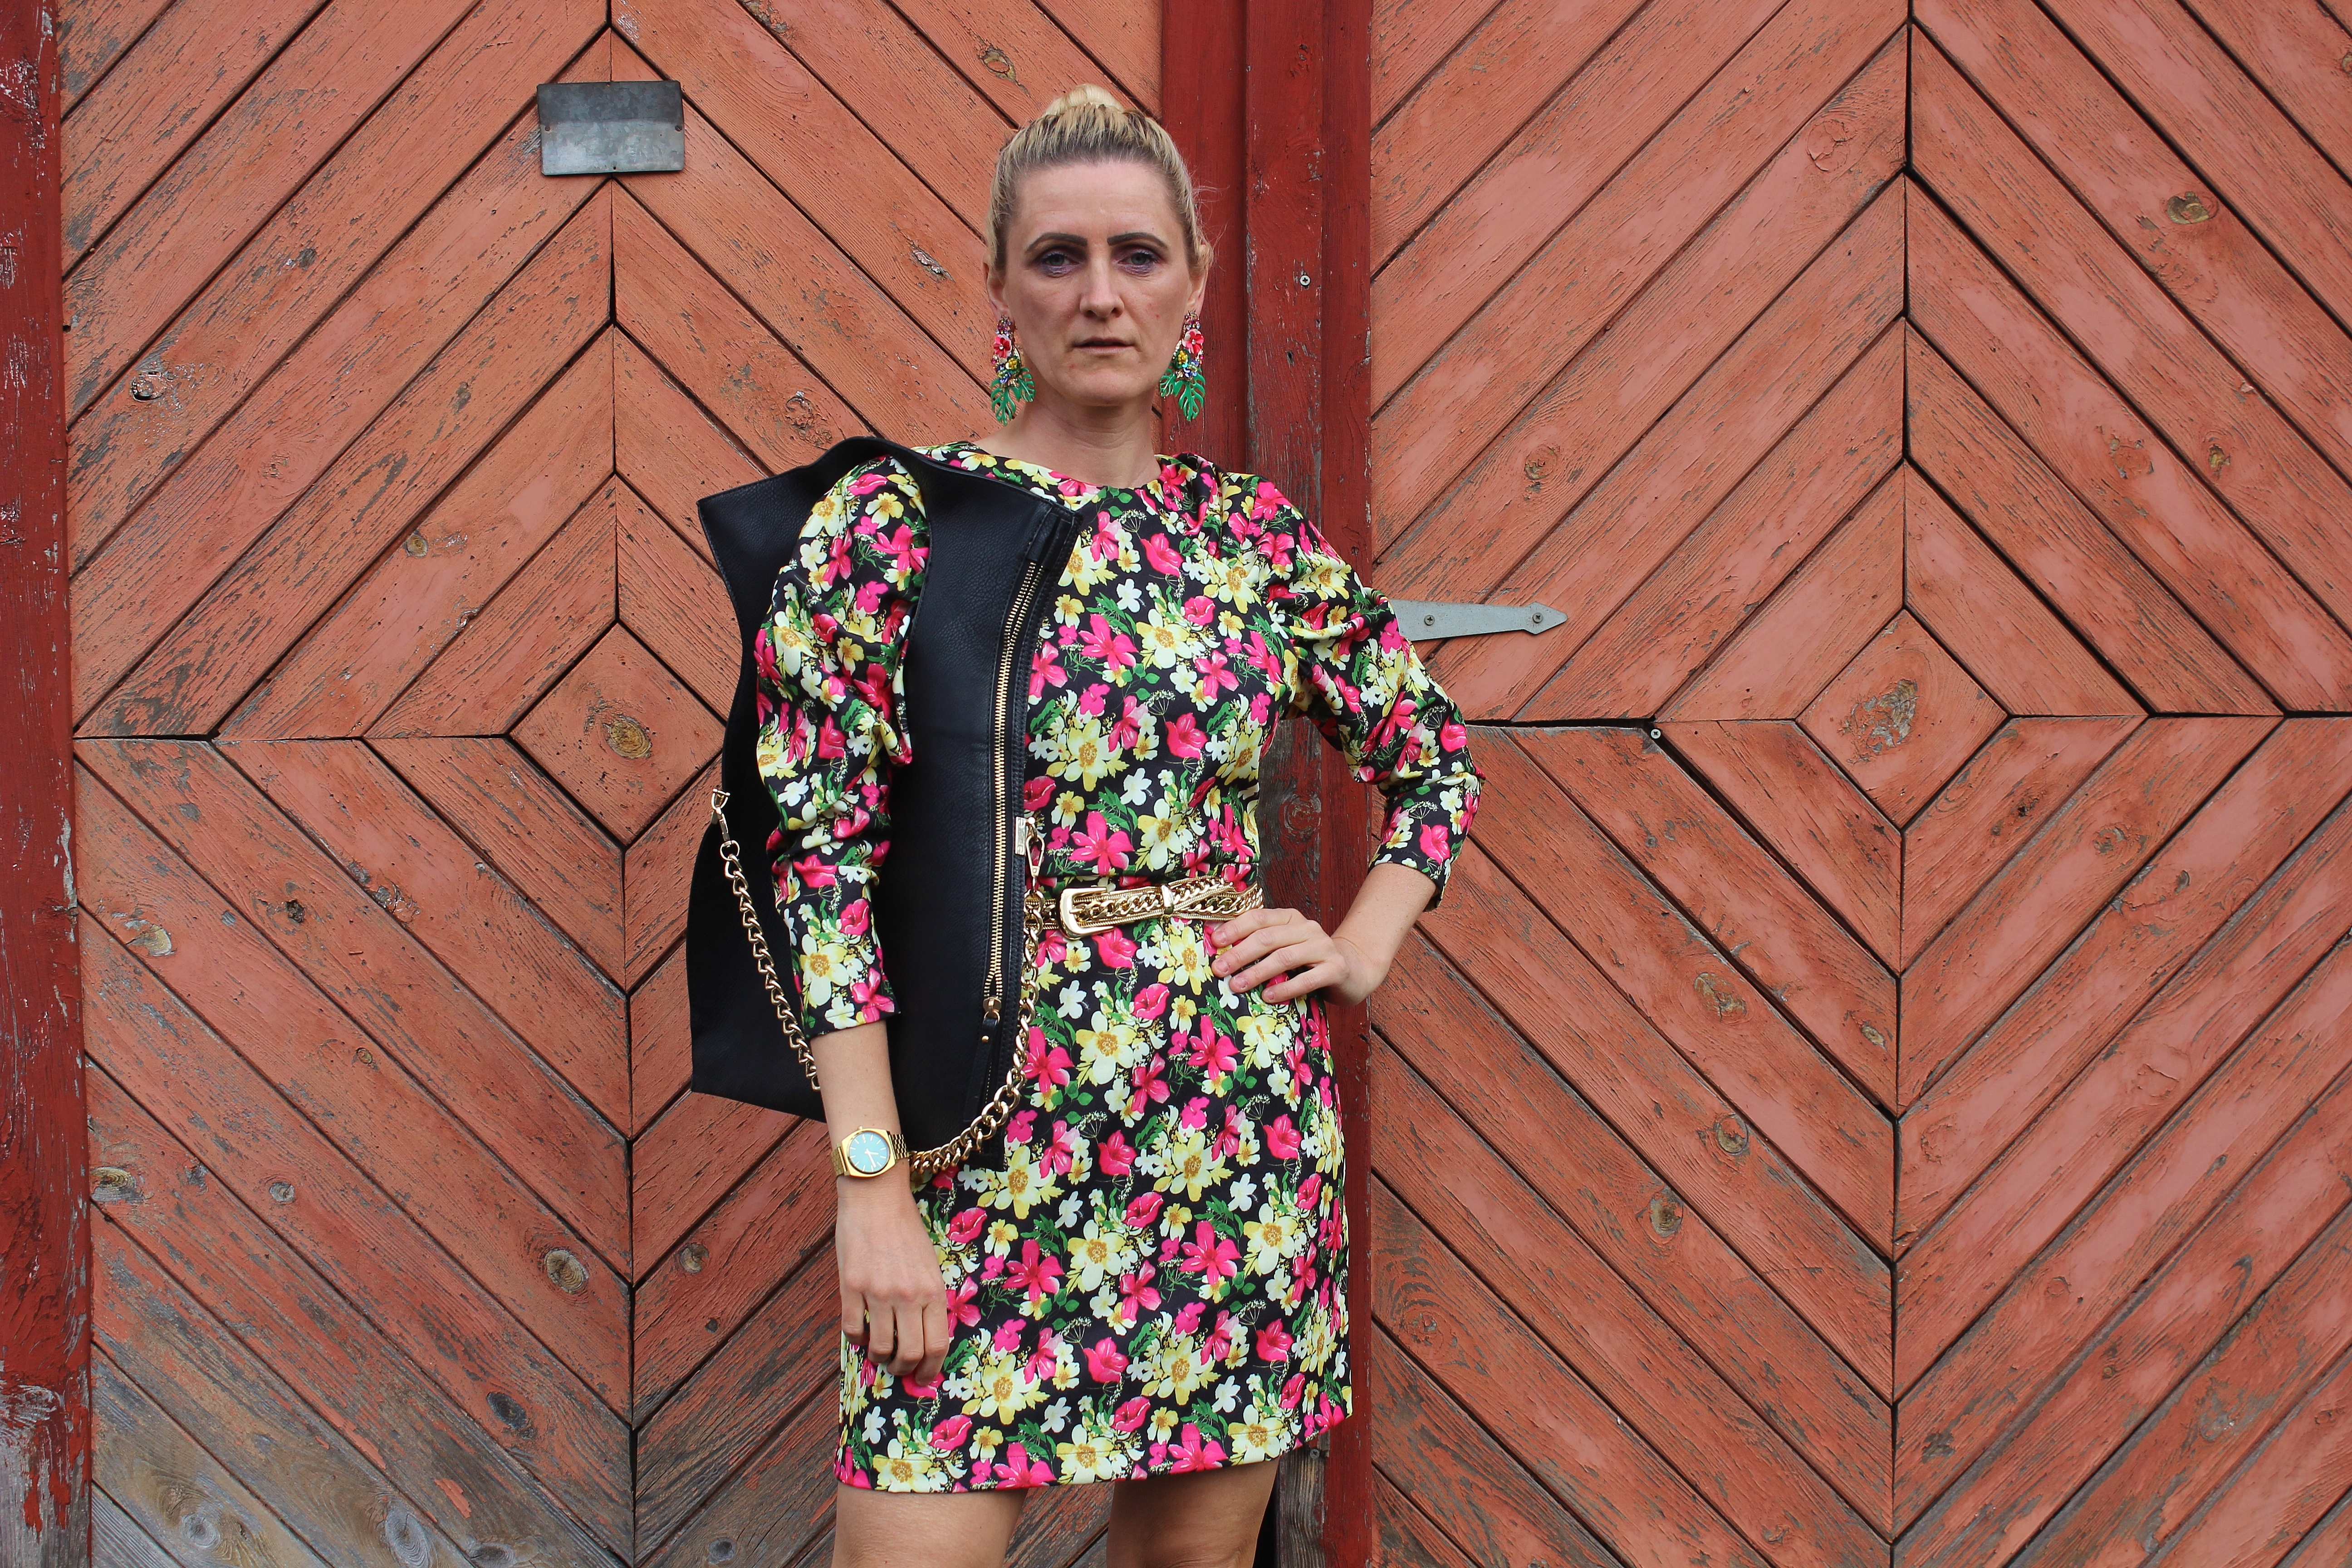 Nakd-FAshion-Floralprint-Dress-Sandals-Schwarze Sandalen-carrieslifestyle-Tamara Prutsch-Blumenprint-Kleid